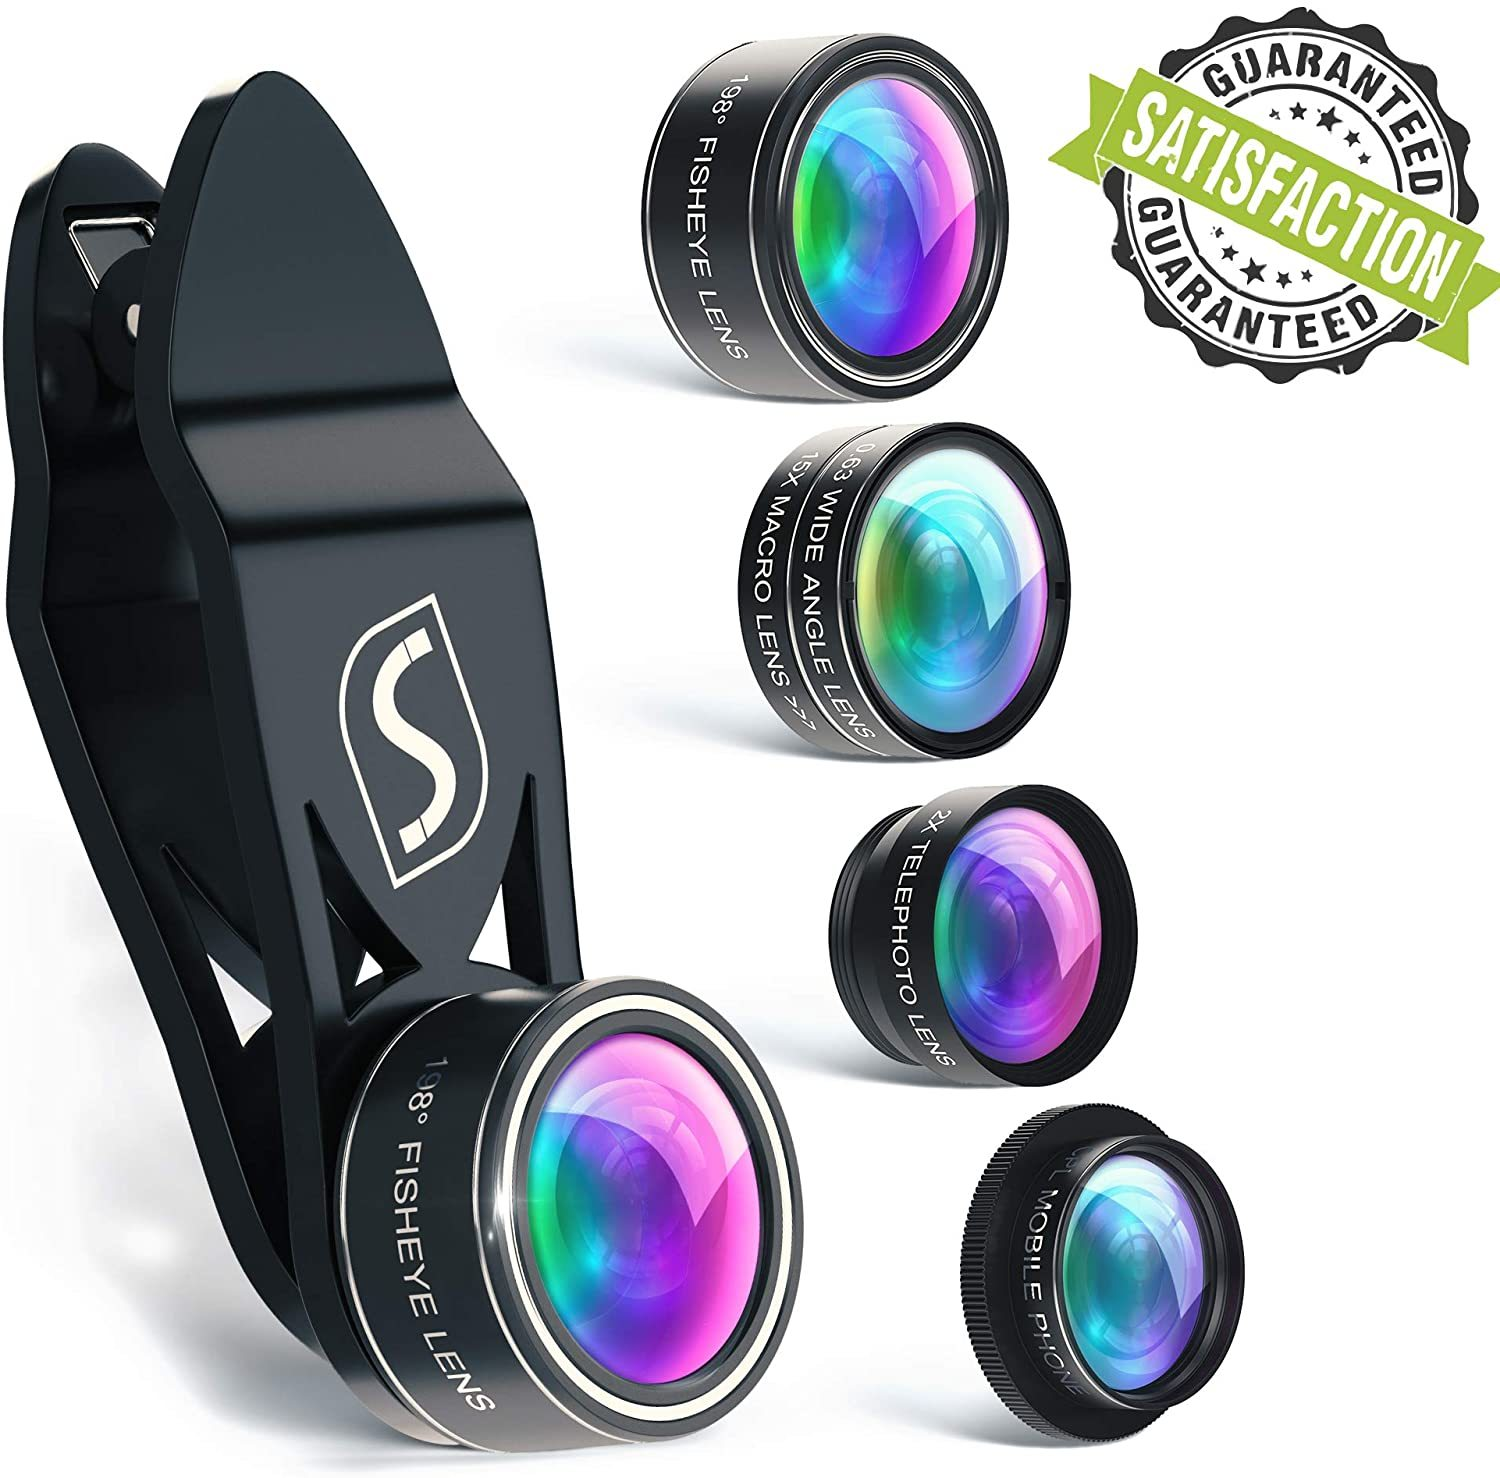 5 in 1 Phone Camera Lens Kit Optical Glass Attachment Set 2X Zoom 0.63X WA-Black - Cell Phone & Smartphone Parts